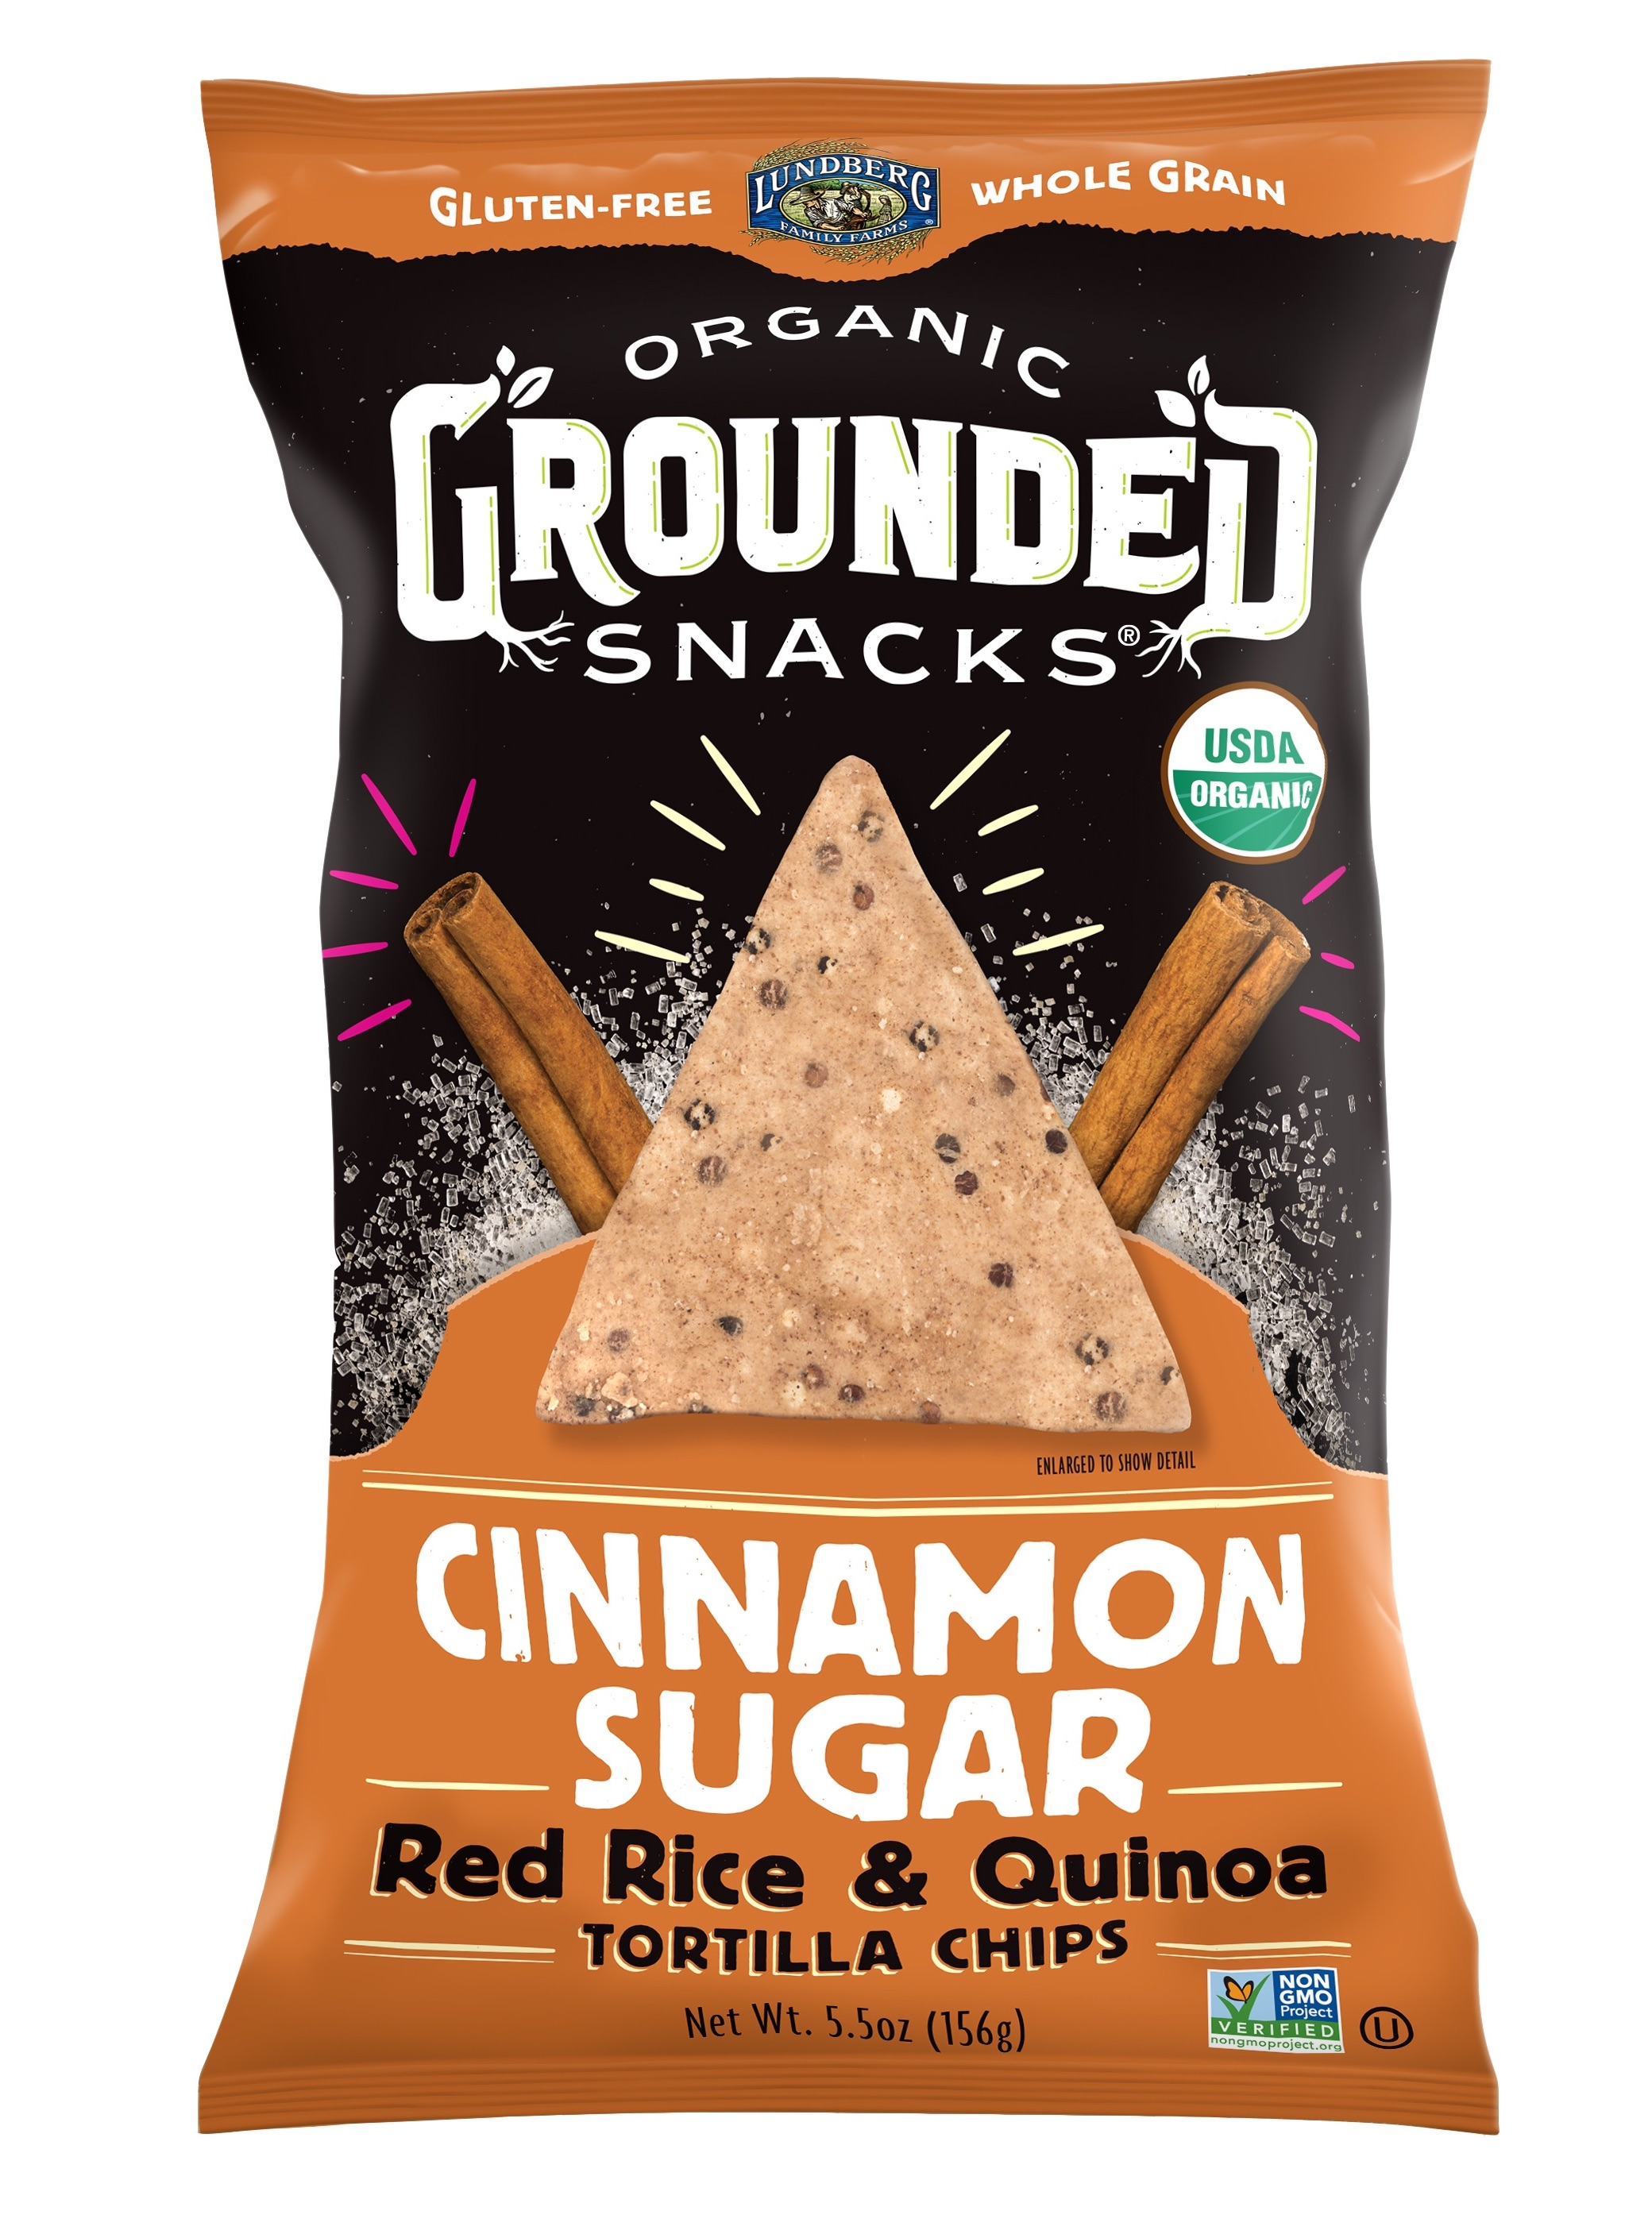 Red Rice & Quinoa Chips – Cinnamon Sugar | The Natural Products